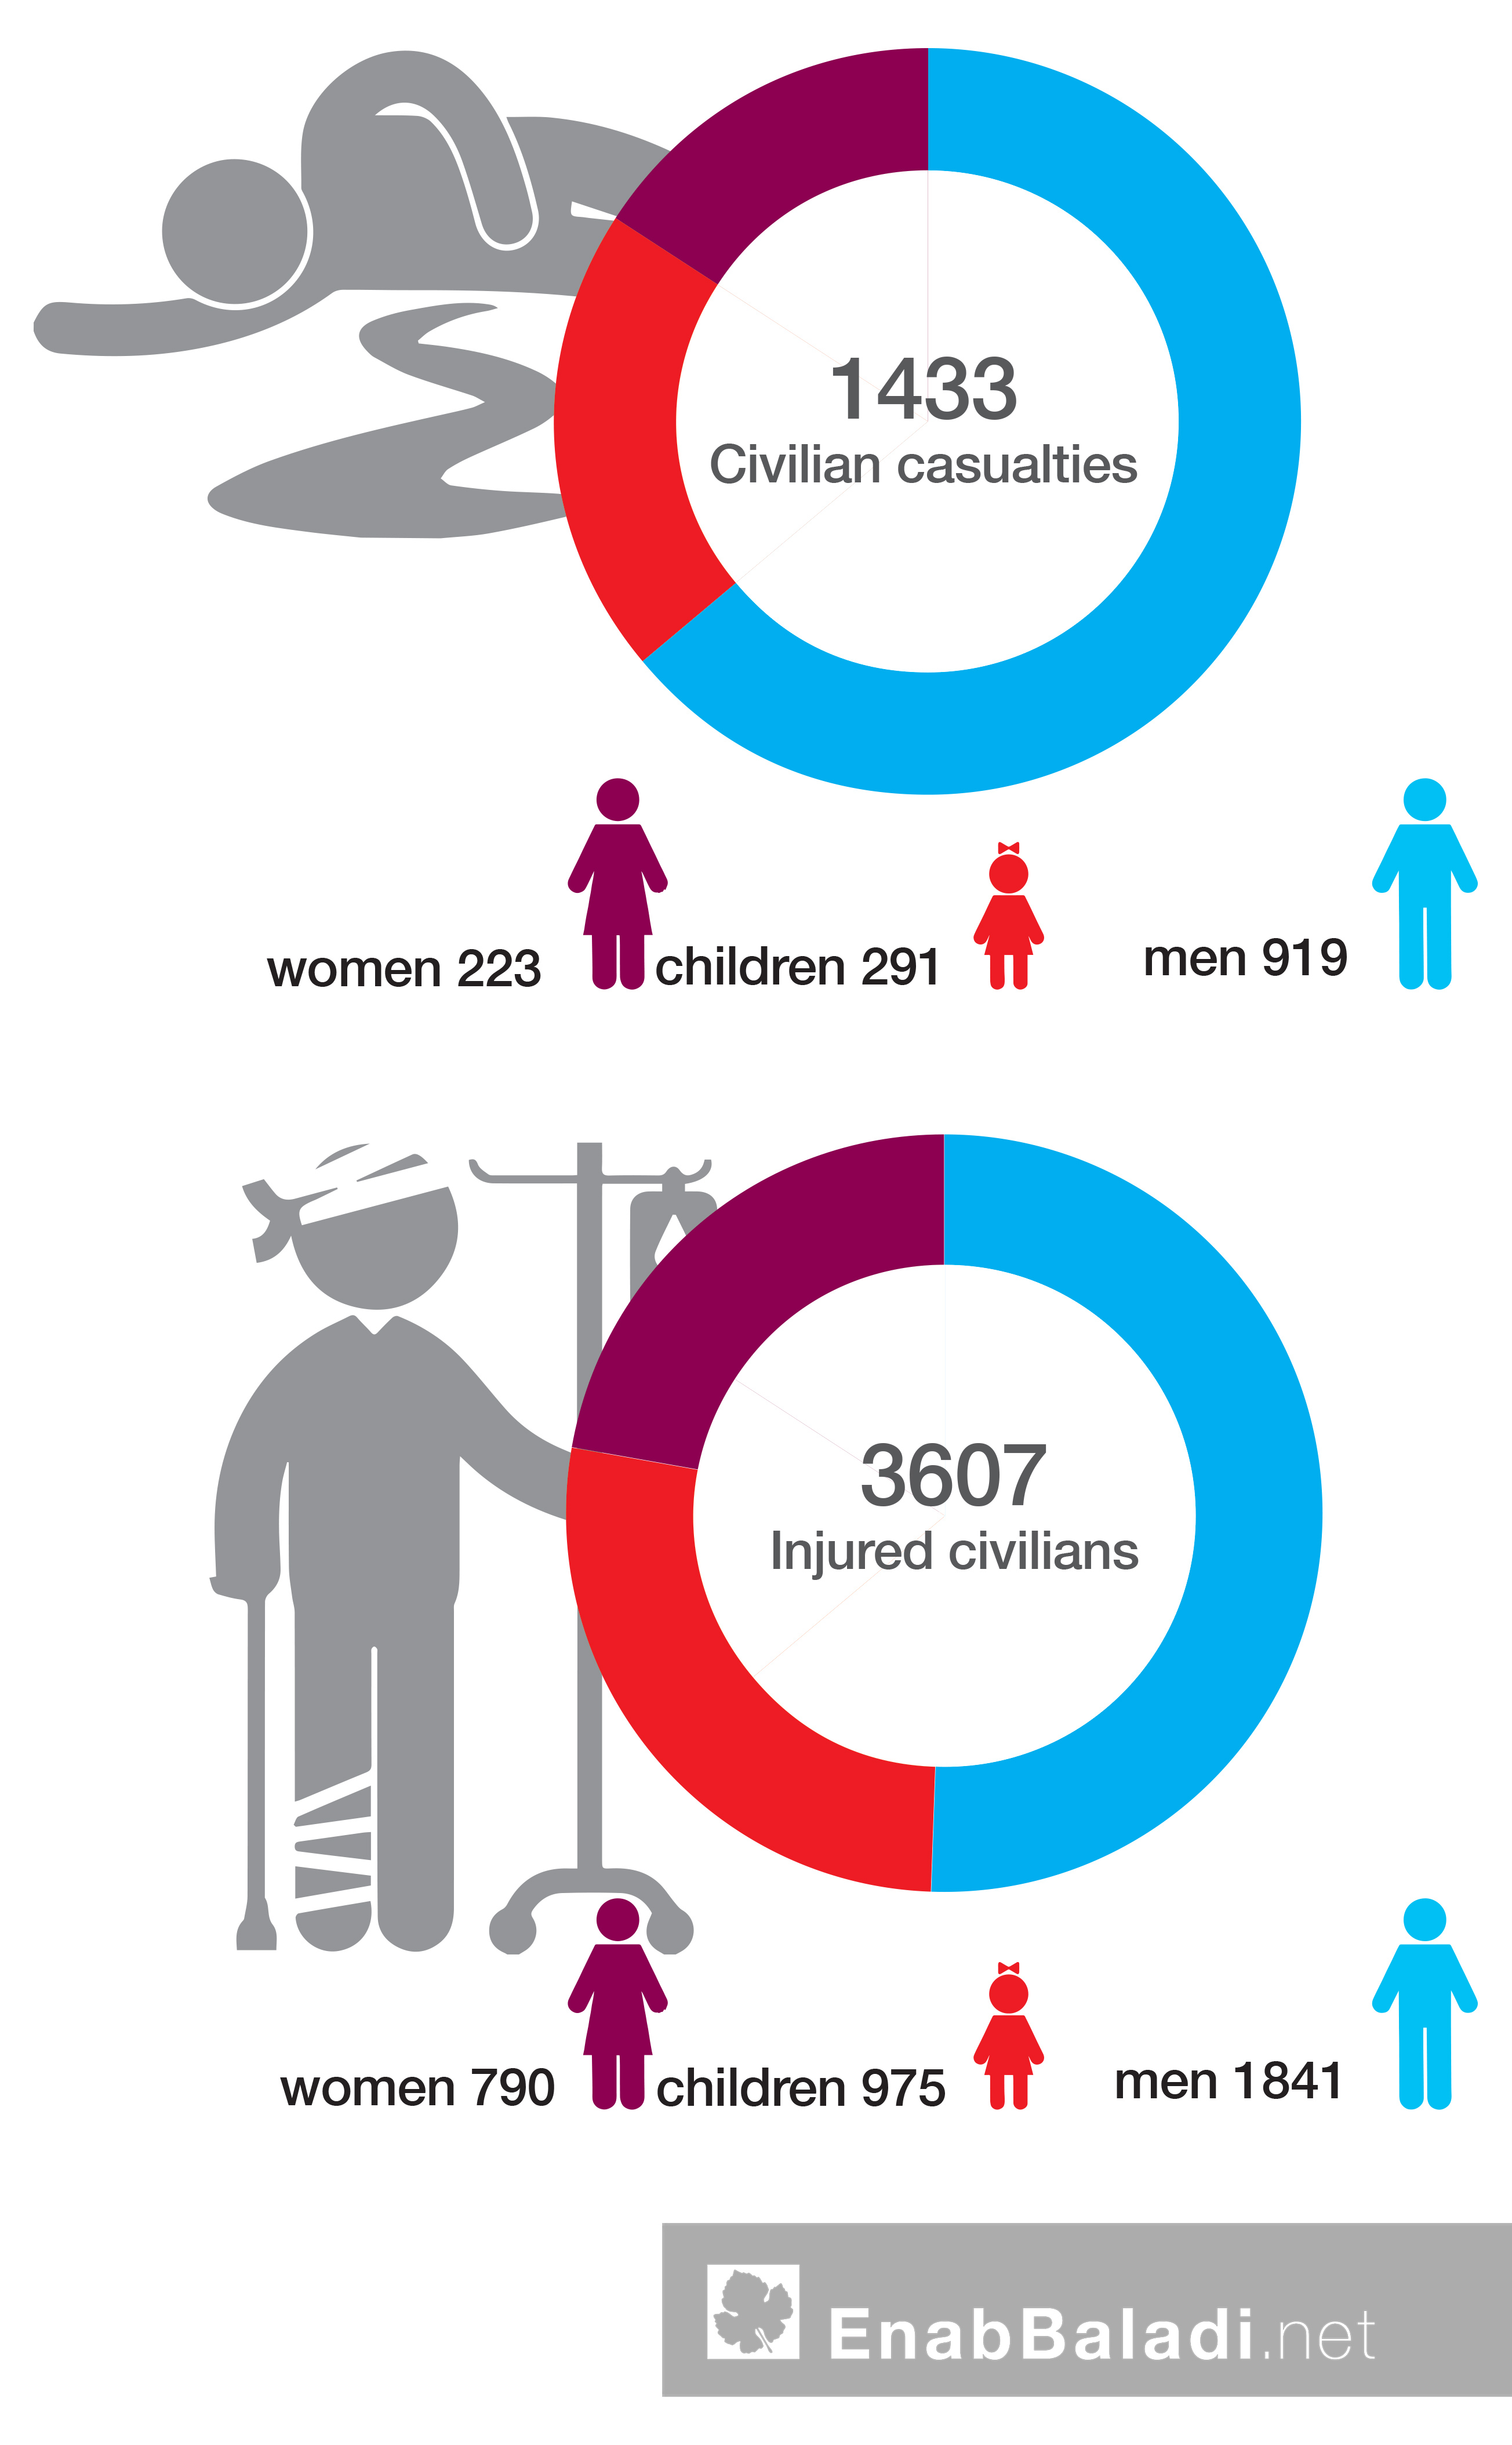 Victims in Eastern Ghouta between February 19 and March 23, 2018 (Civil Defense – Designed by Enab Baladi)